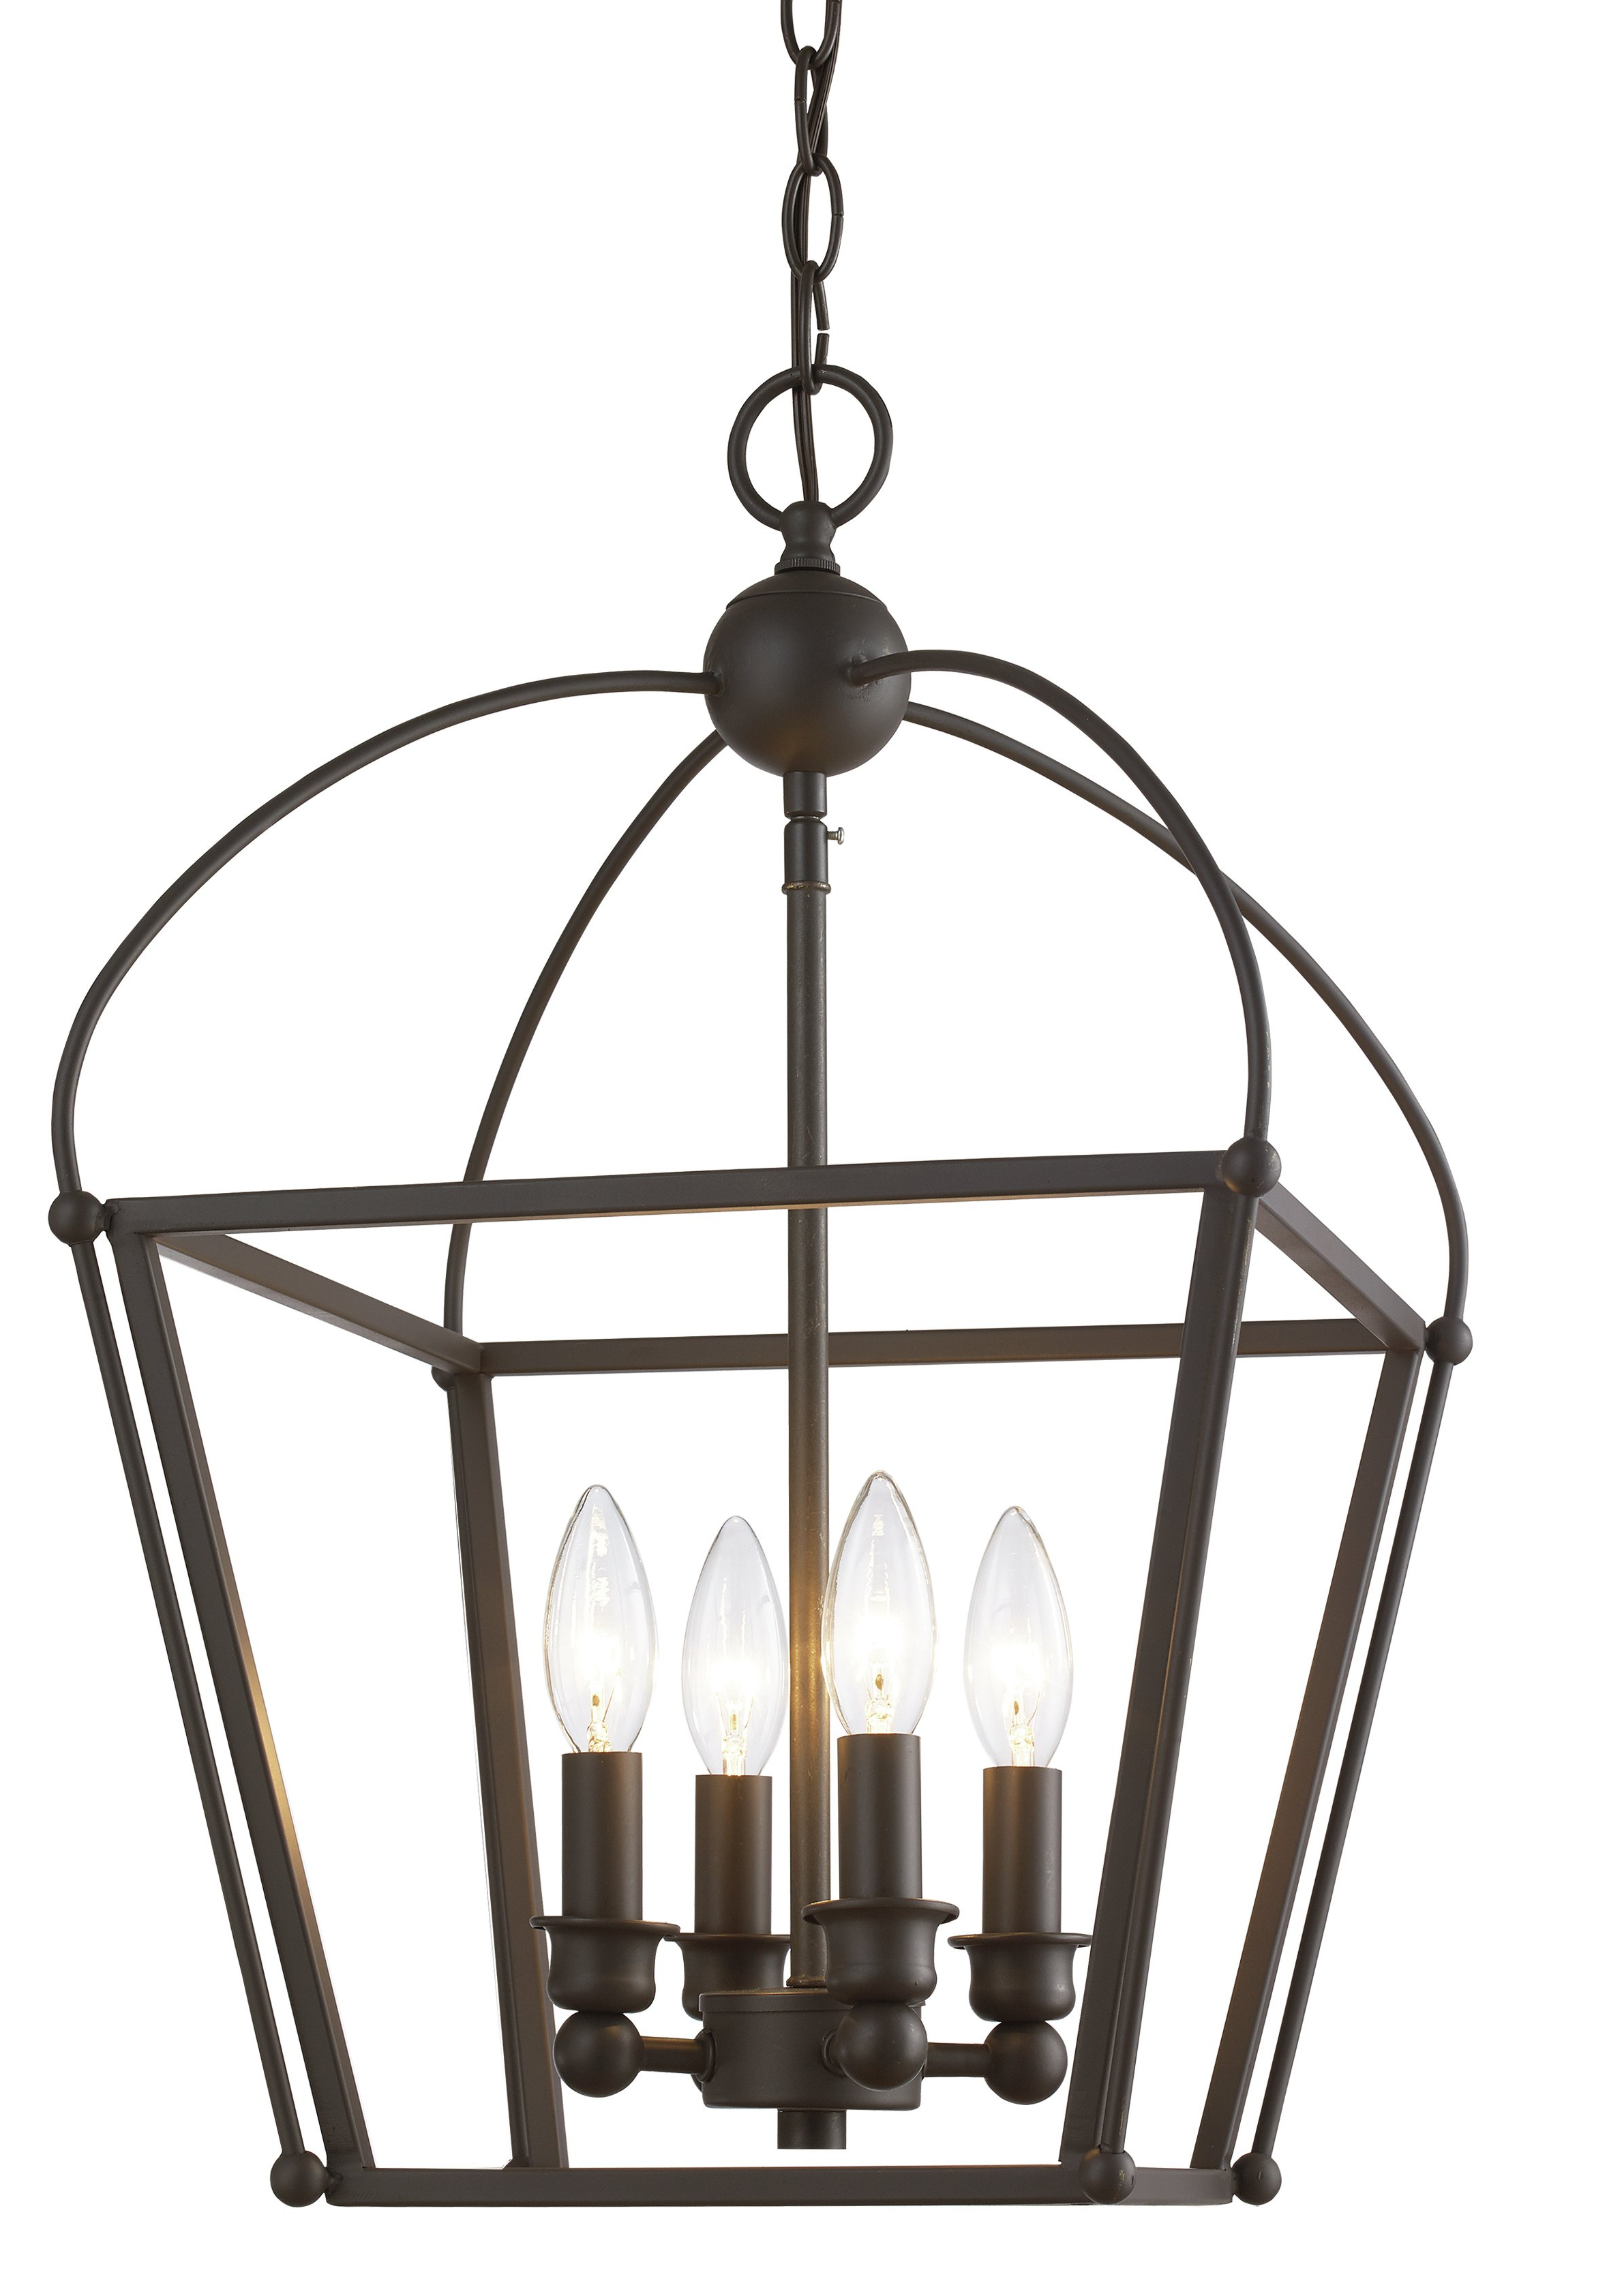 2019 Gladding 4 Light Foyer Lantern Pendant Throughout Varnum 4 Light Lantern Pendants (Gallery 12 of 20)